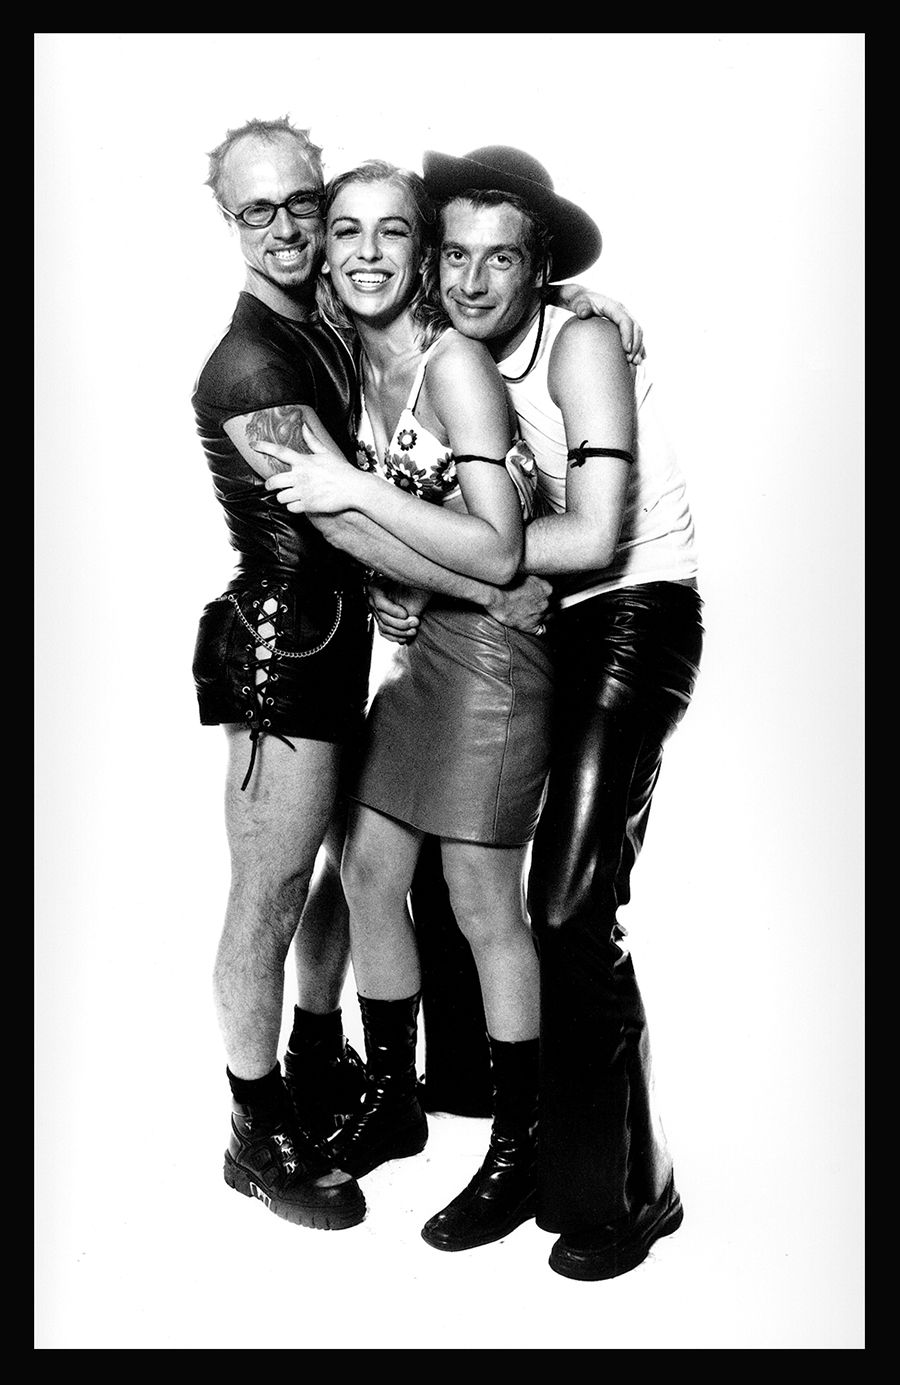 med-Tony_Ward_photography_wasteland_fetish_party_Amsterdam_The_Netherlands_Holland_kink_kinky_parties_threesome-c19